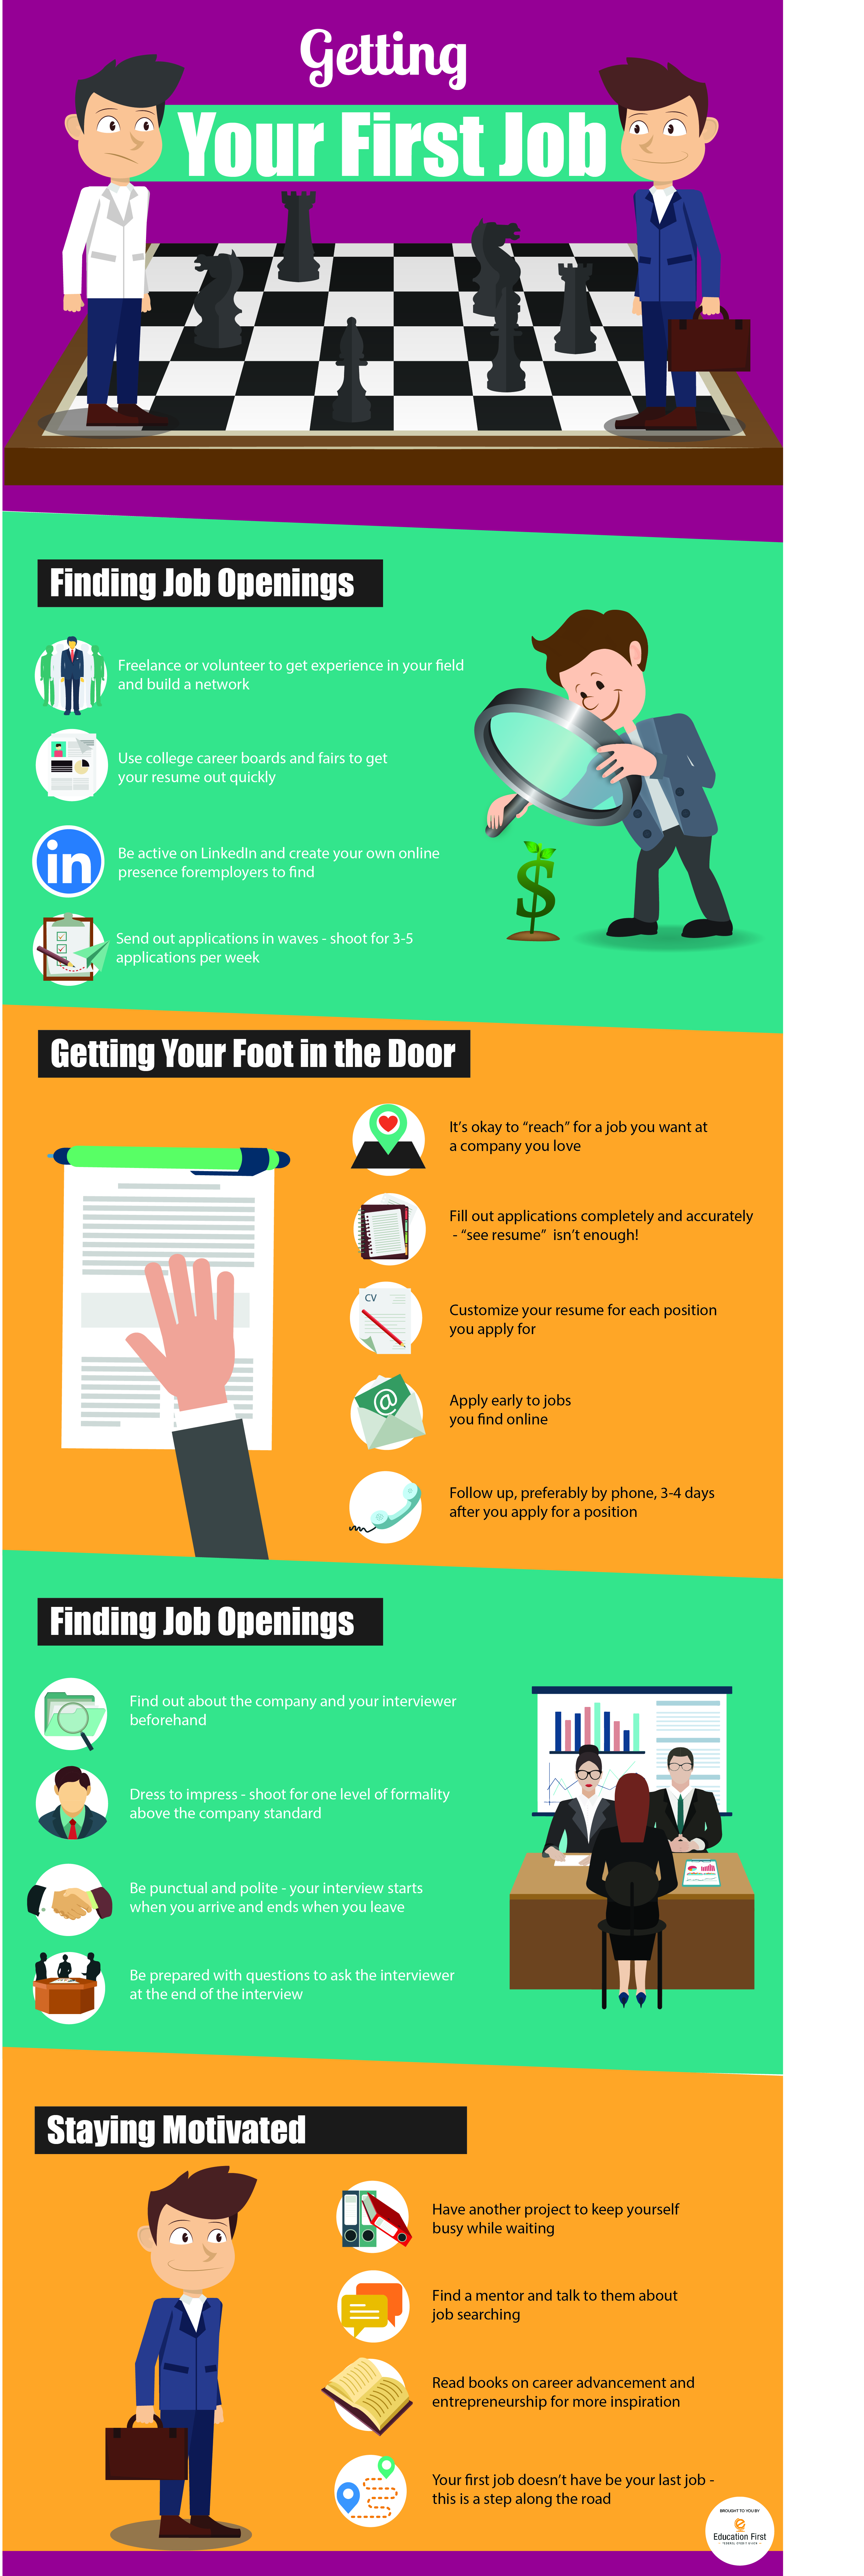 Tips on getting your first job